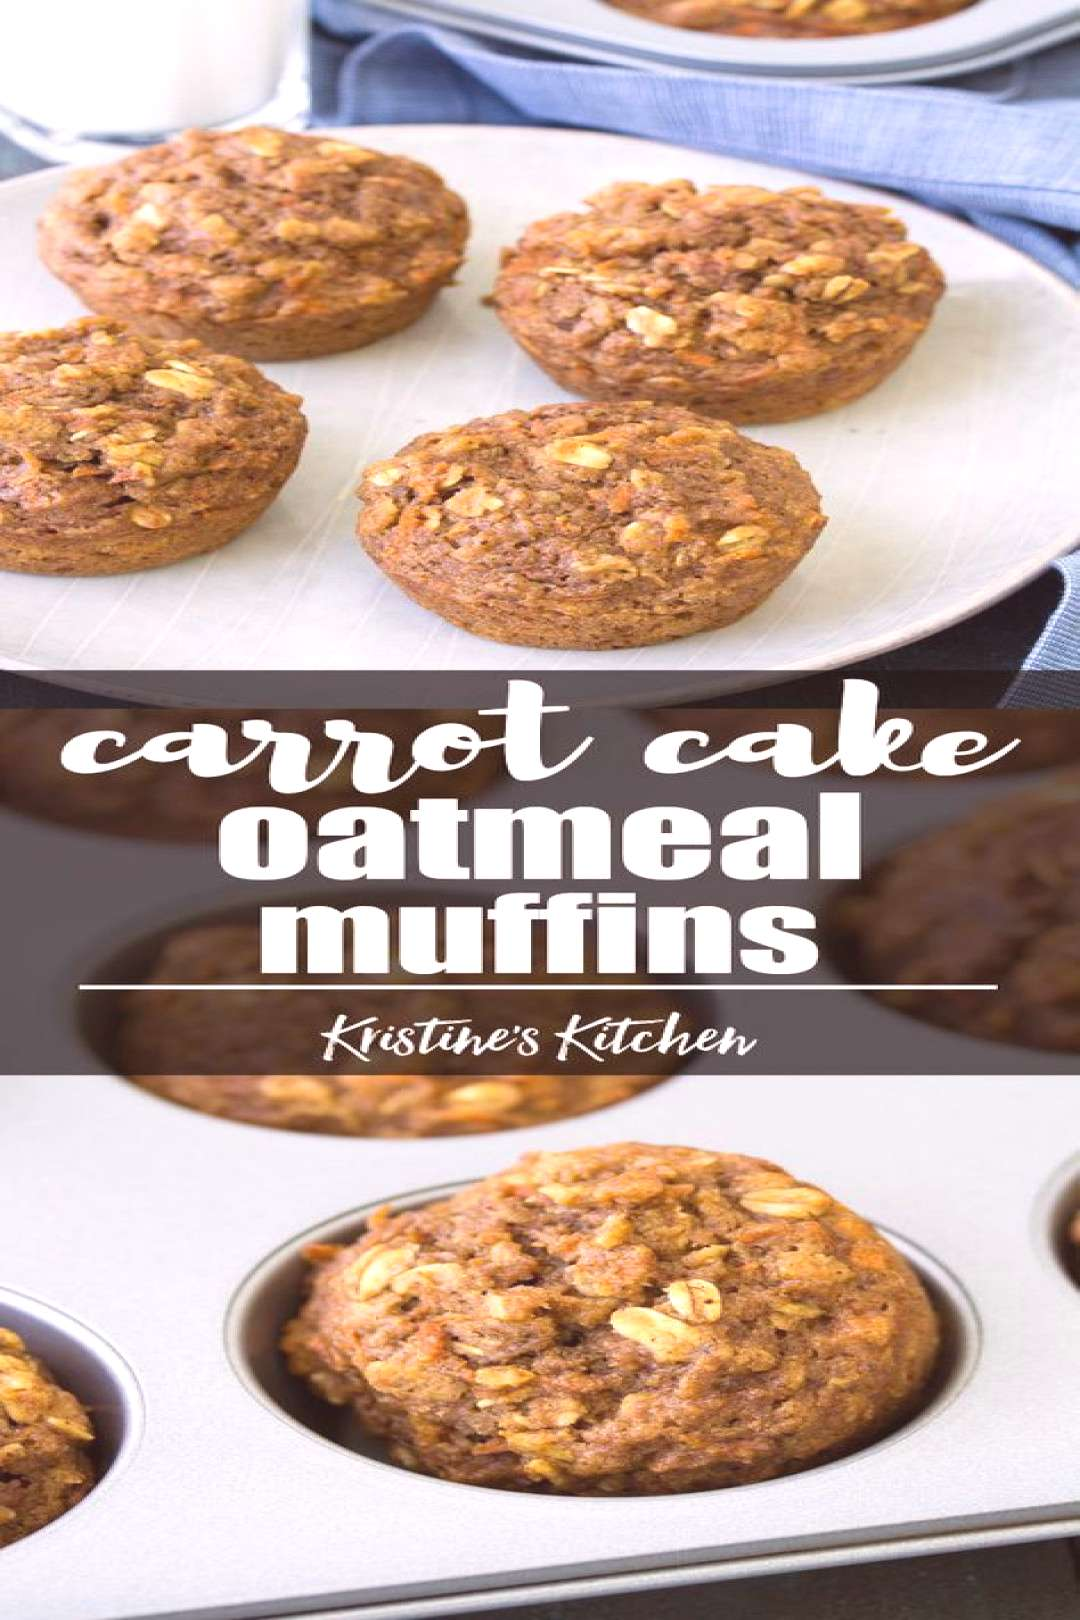 Healthy Carrot Cake Oat Muffins (One Bowl),Baking Muffins Muffins Muffins Muffins muffins Muffins c